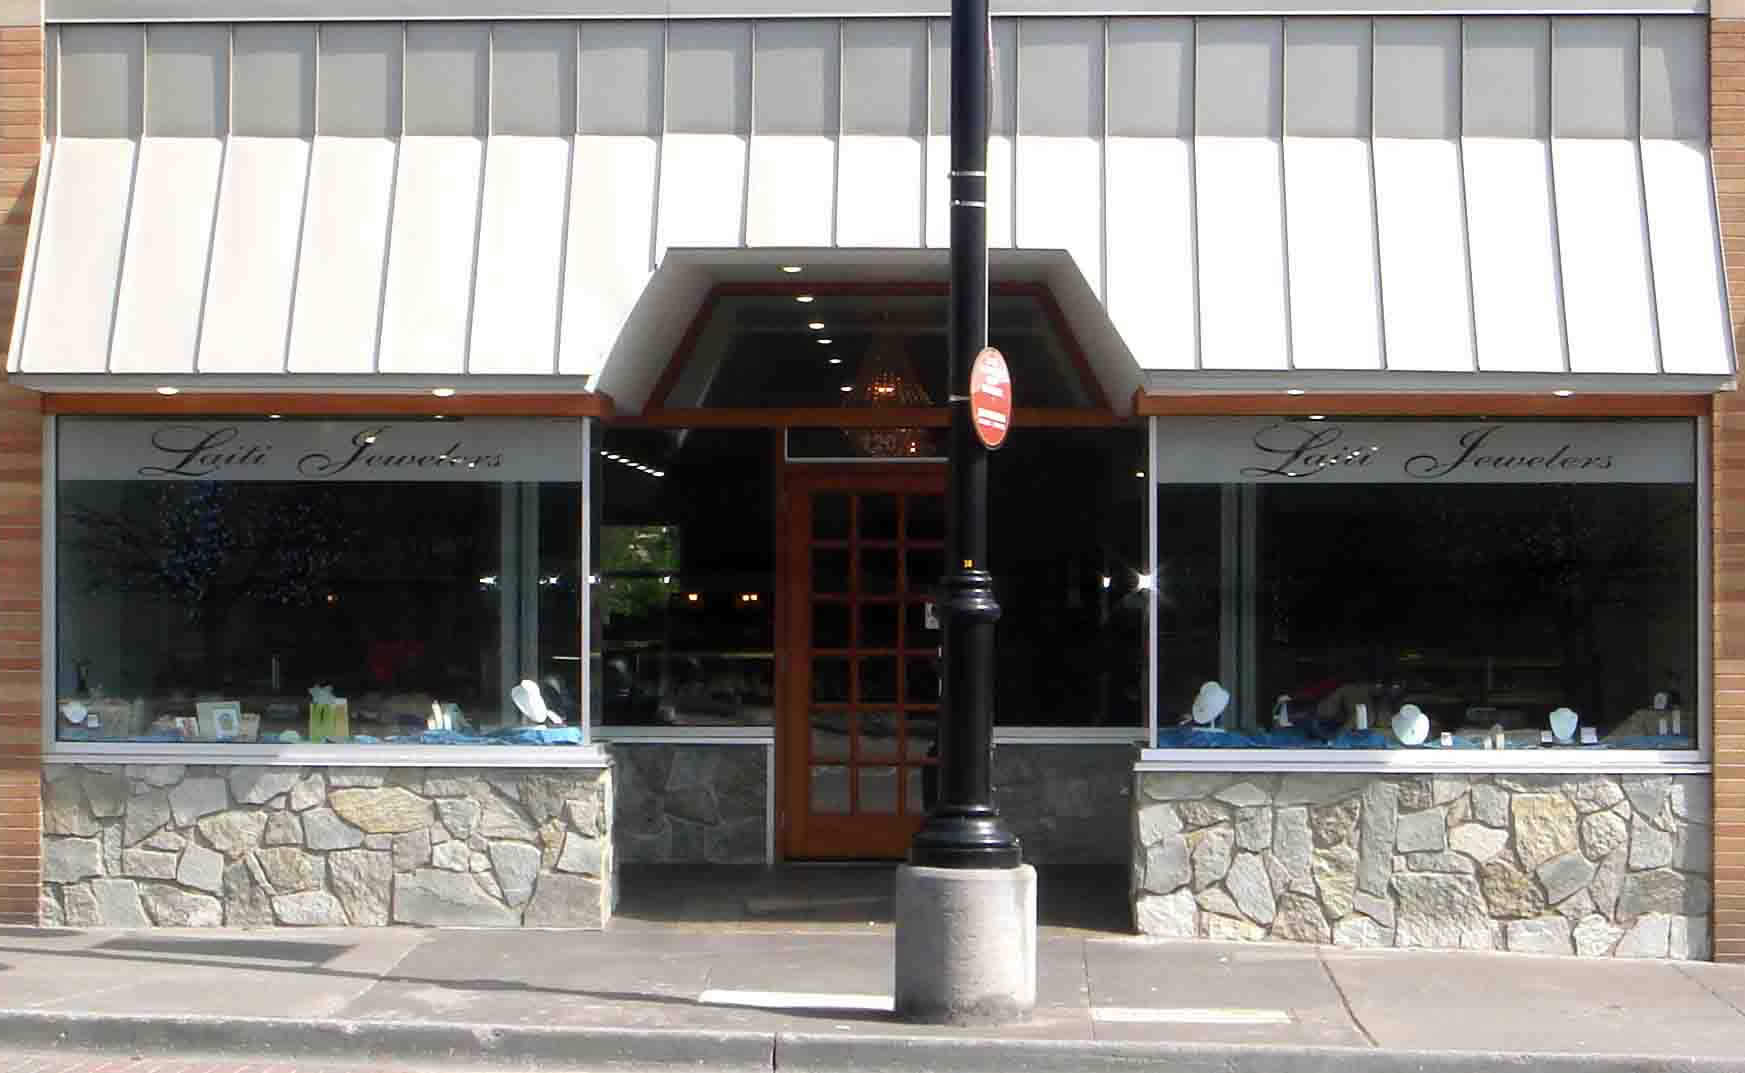 The store front of Laiti Jewelers.